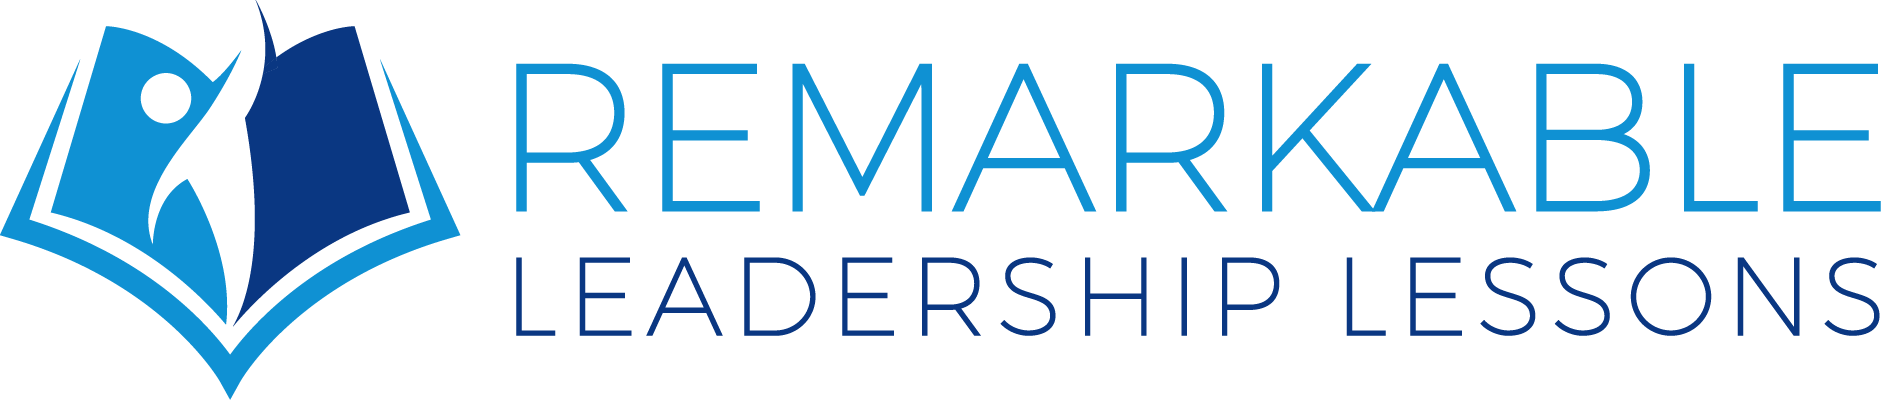 Remarkable Leadership Lessons Inc.